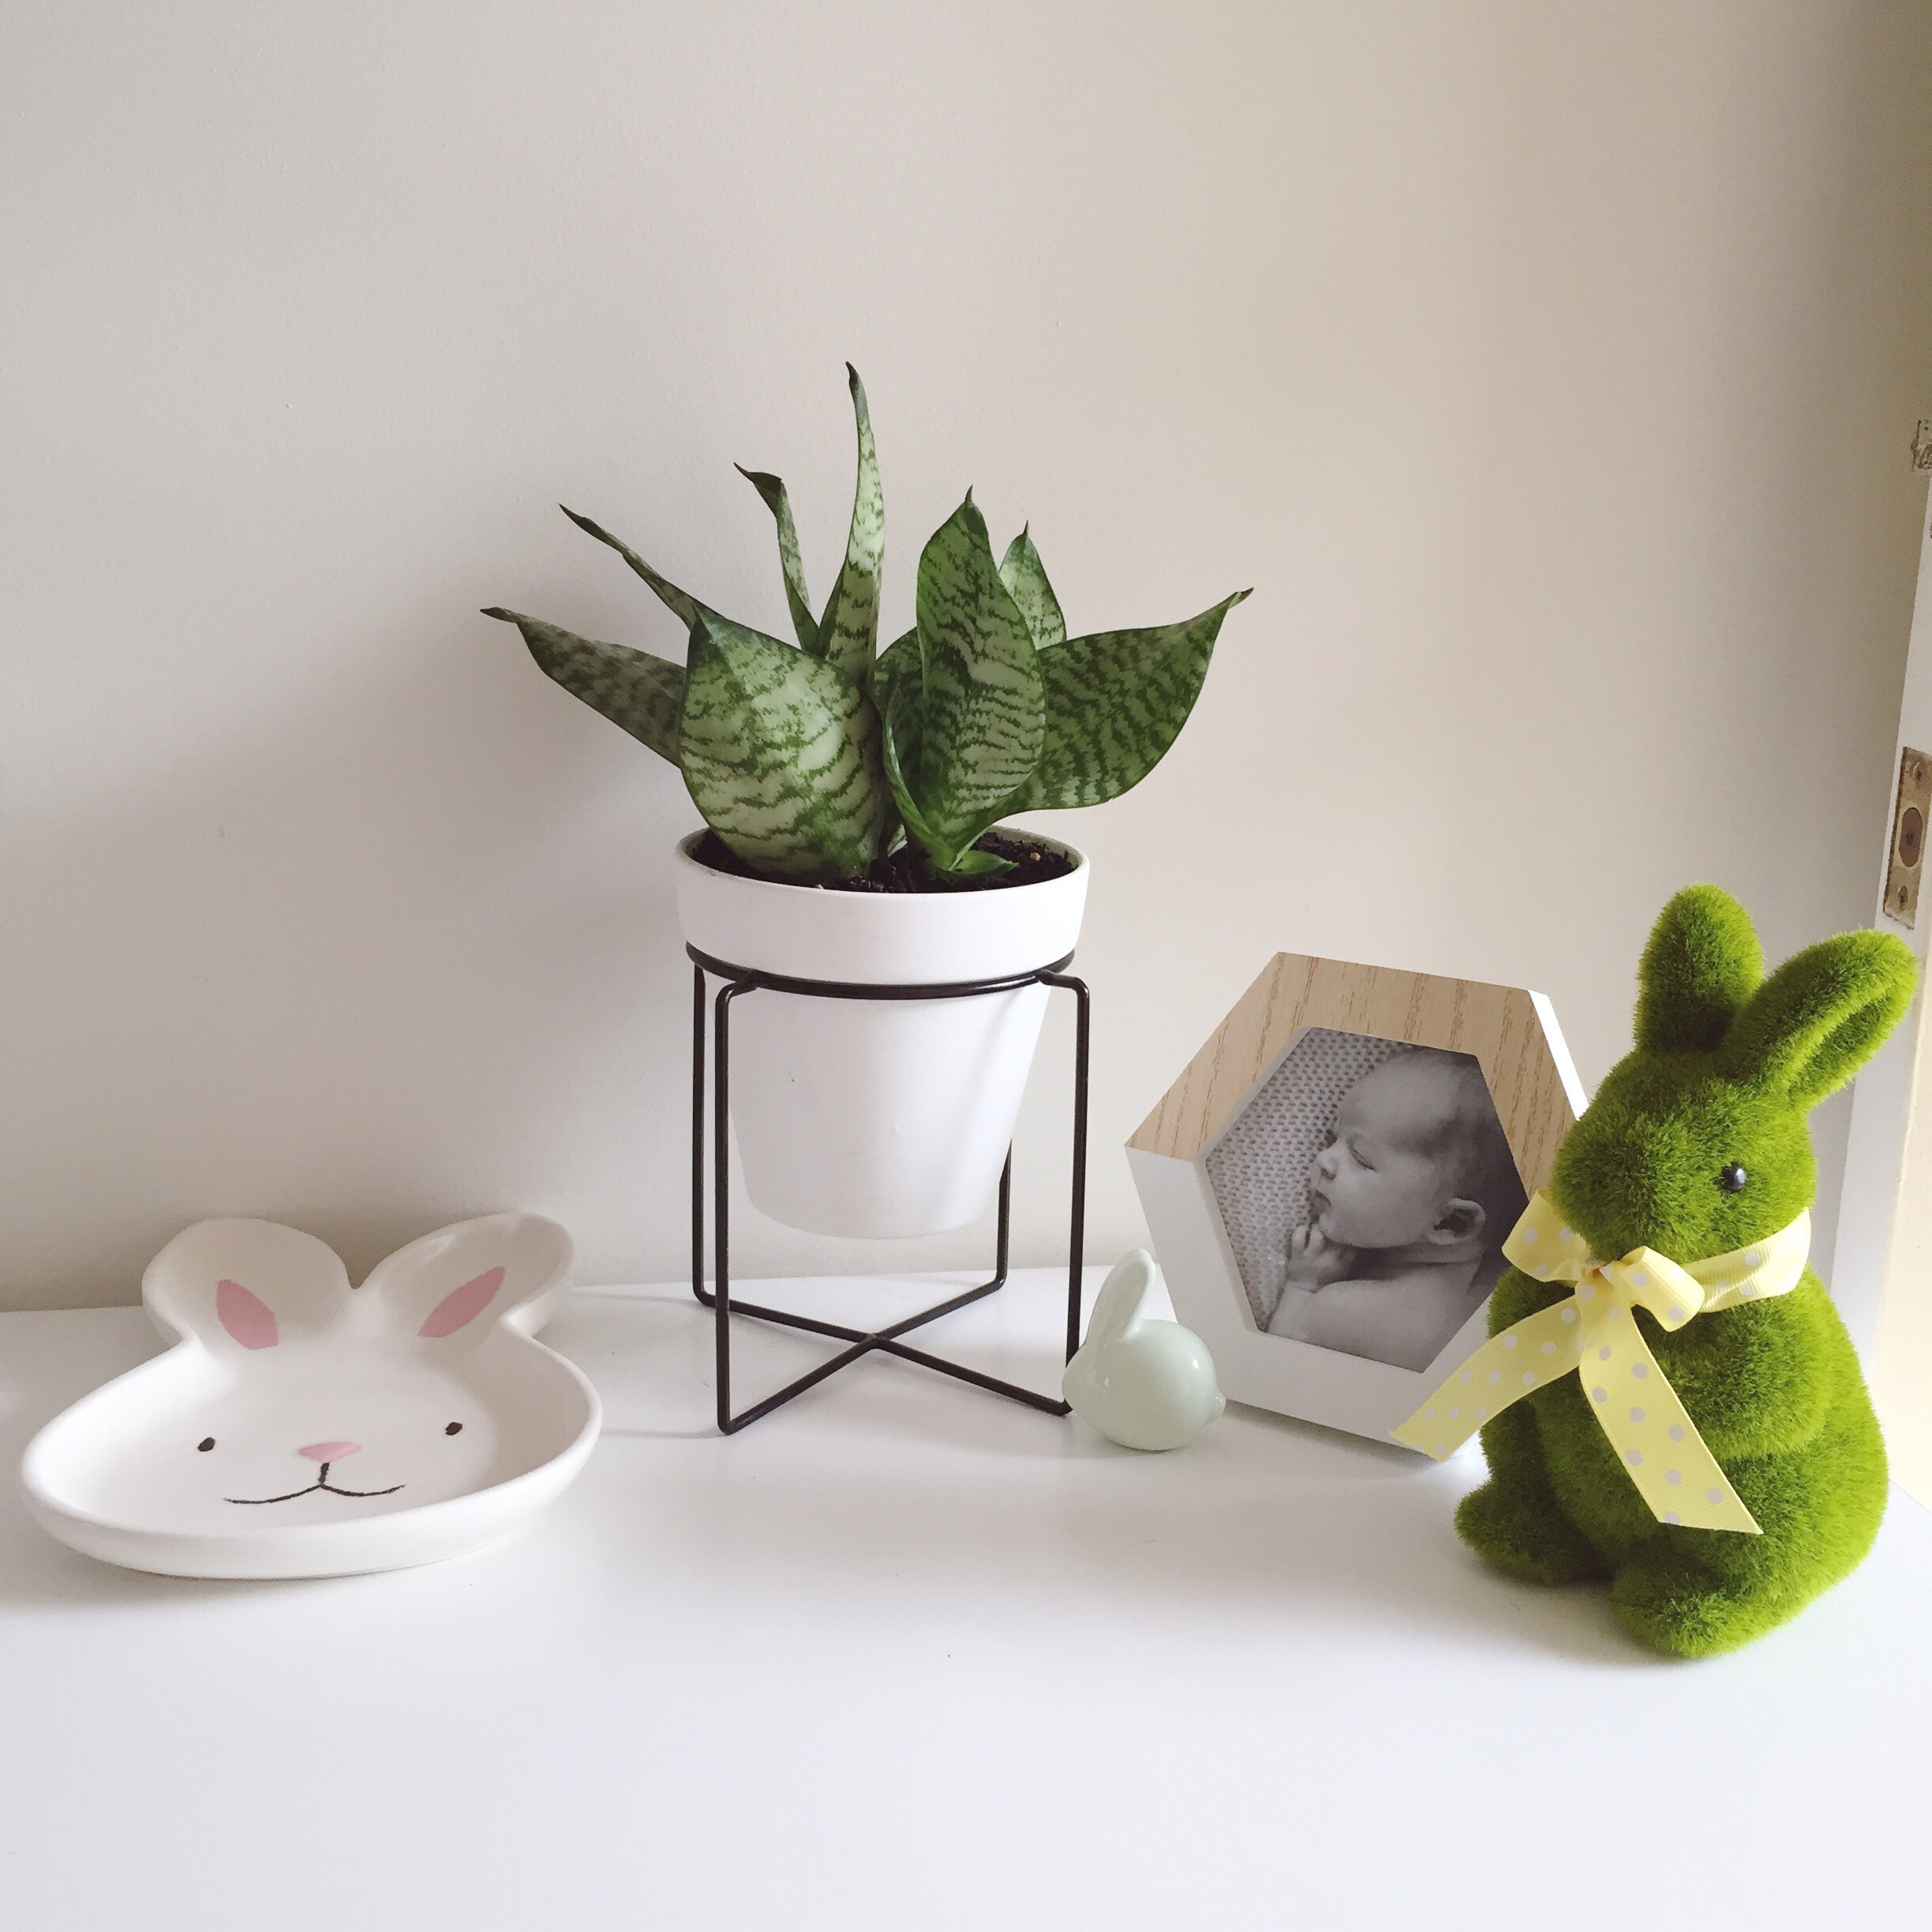 Moss bunny from Woolworths (last year I think), bunny plate from Target this year